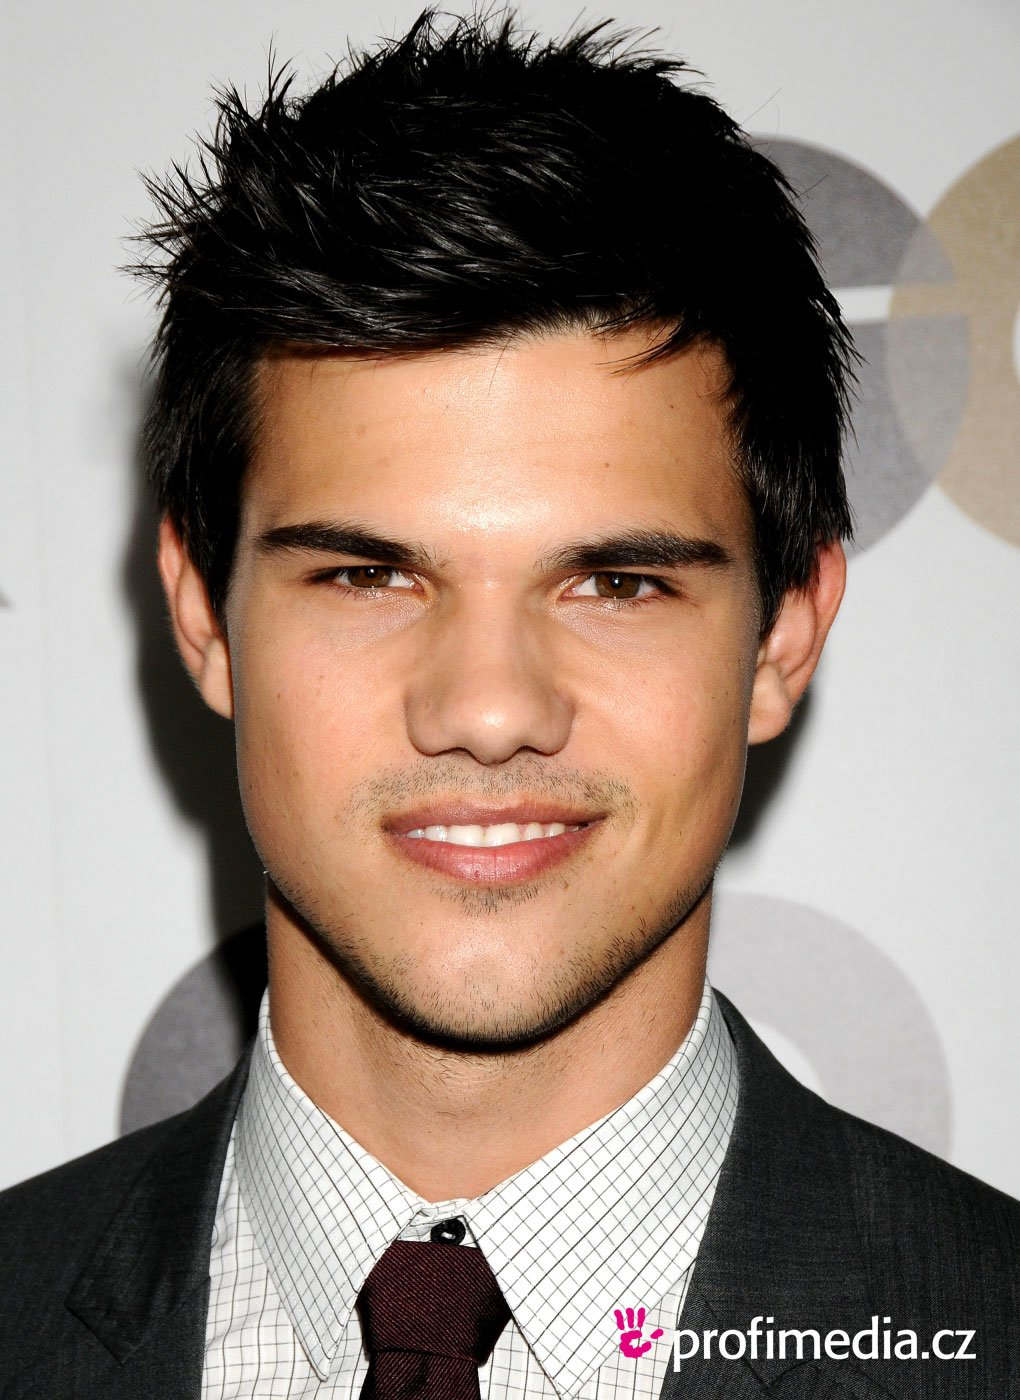 The Best Taylor Lautner Cool Hairstyles Men Hairstyles Short Pictures